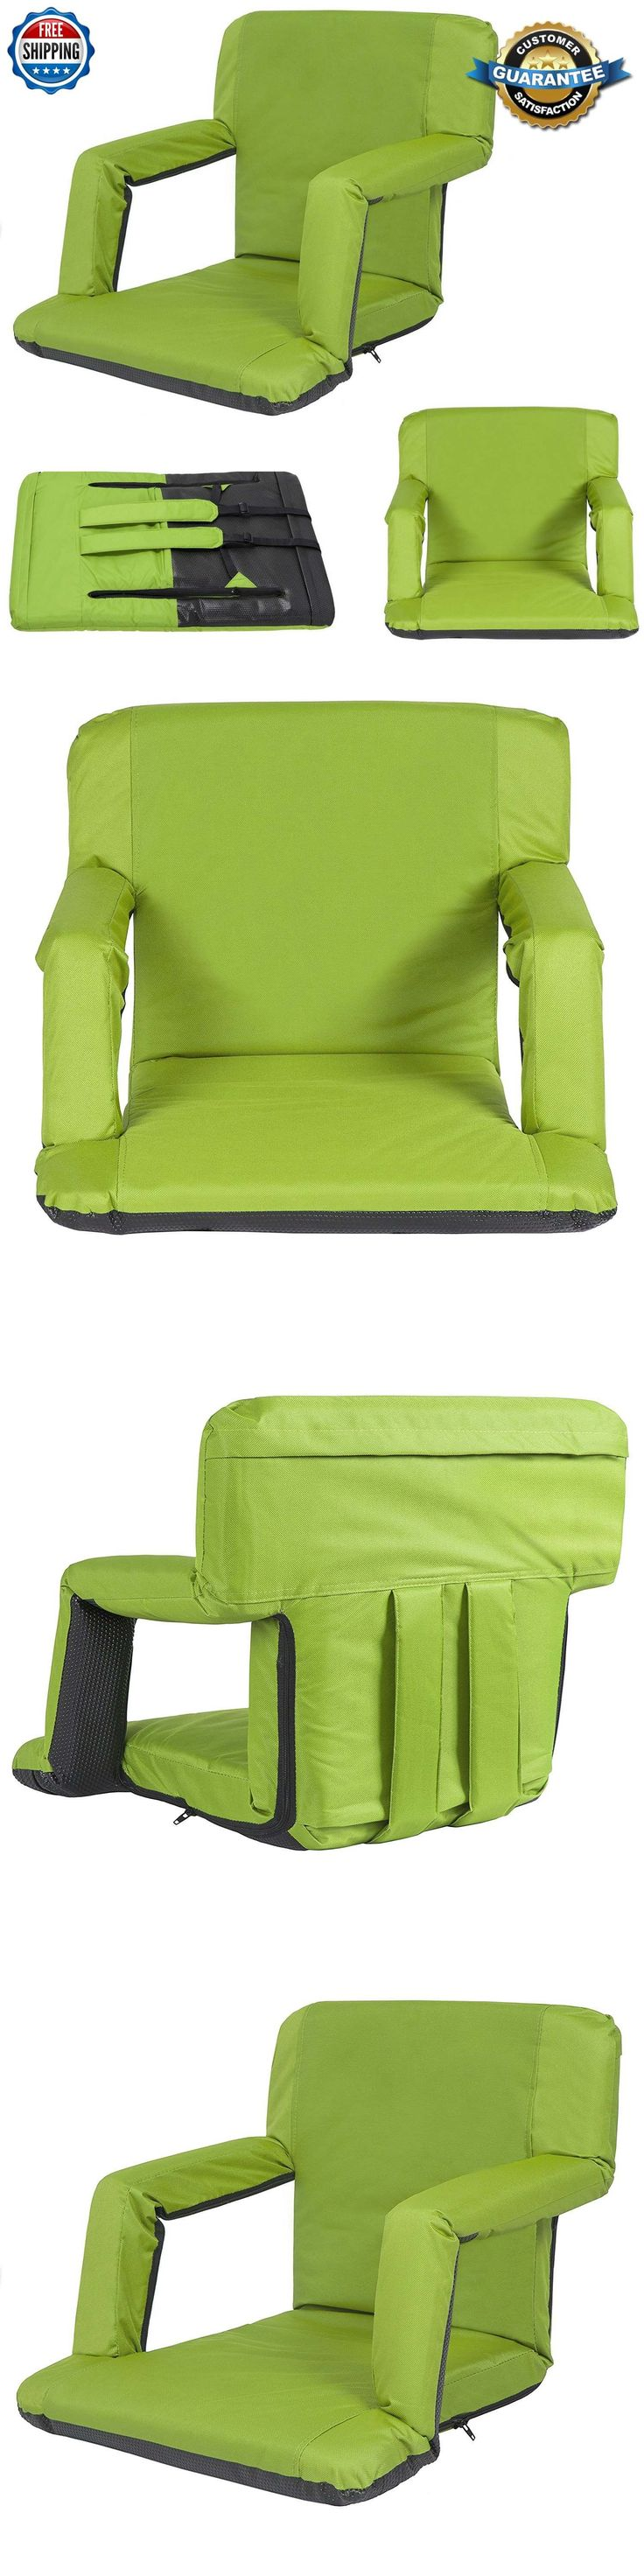 Other Outdoor Sports 159048: Padded Stadium Chair Reclining Seat Green Portable Bleacher Cushion Bench Camp -> BUY IT NOW ONLY: $292.32 on eBay!